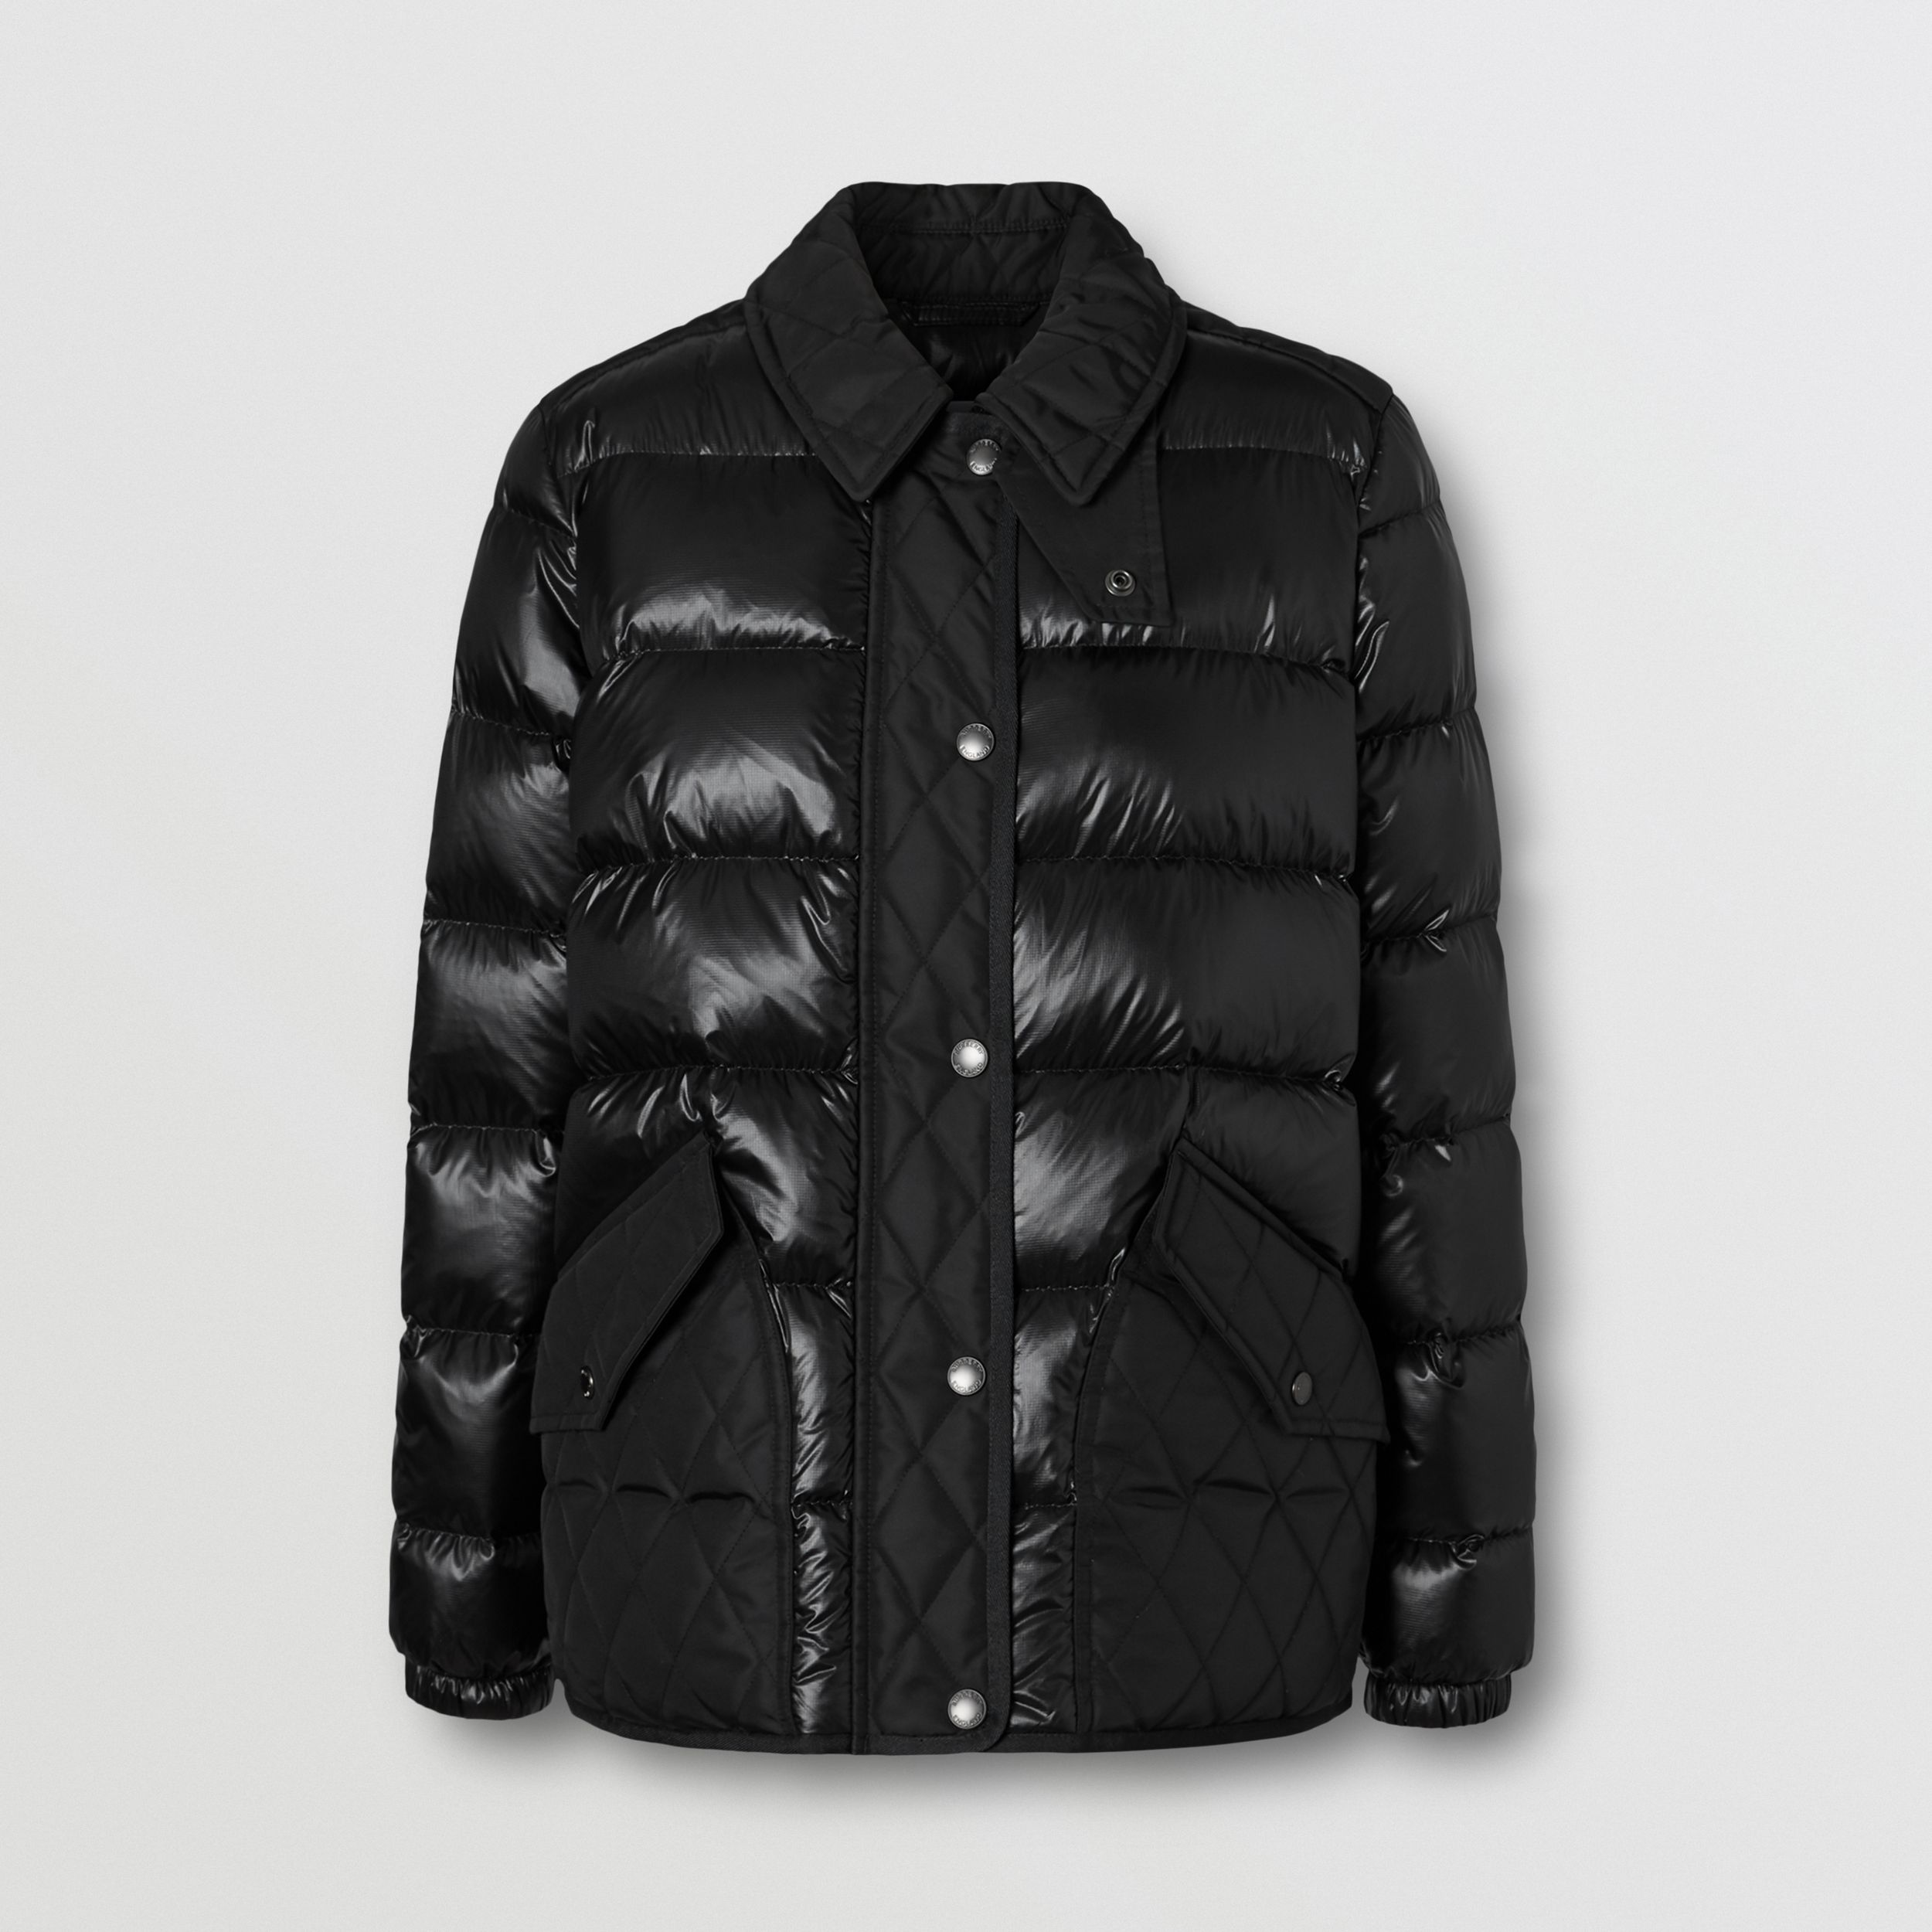 Diamond Quilted Panel Puffer Jacket in Black - Women | Burberry Singapore - 4